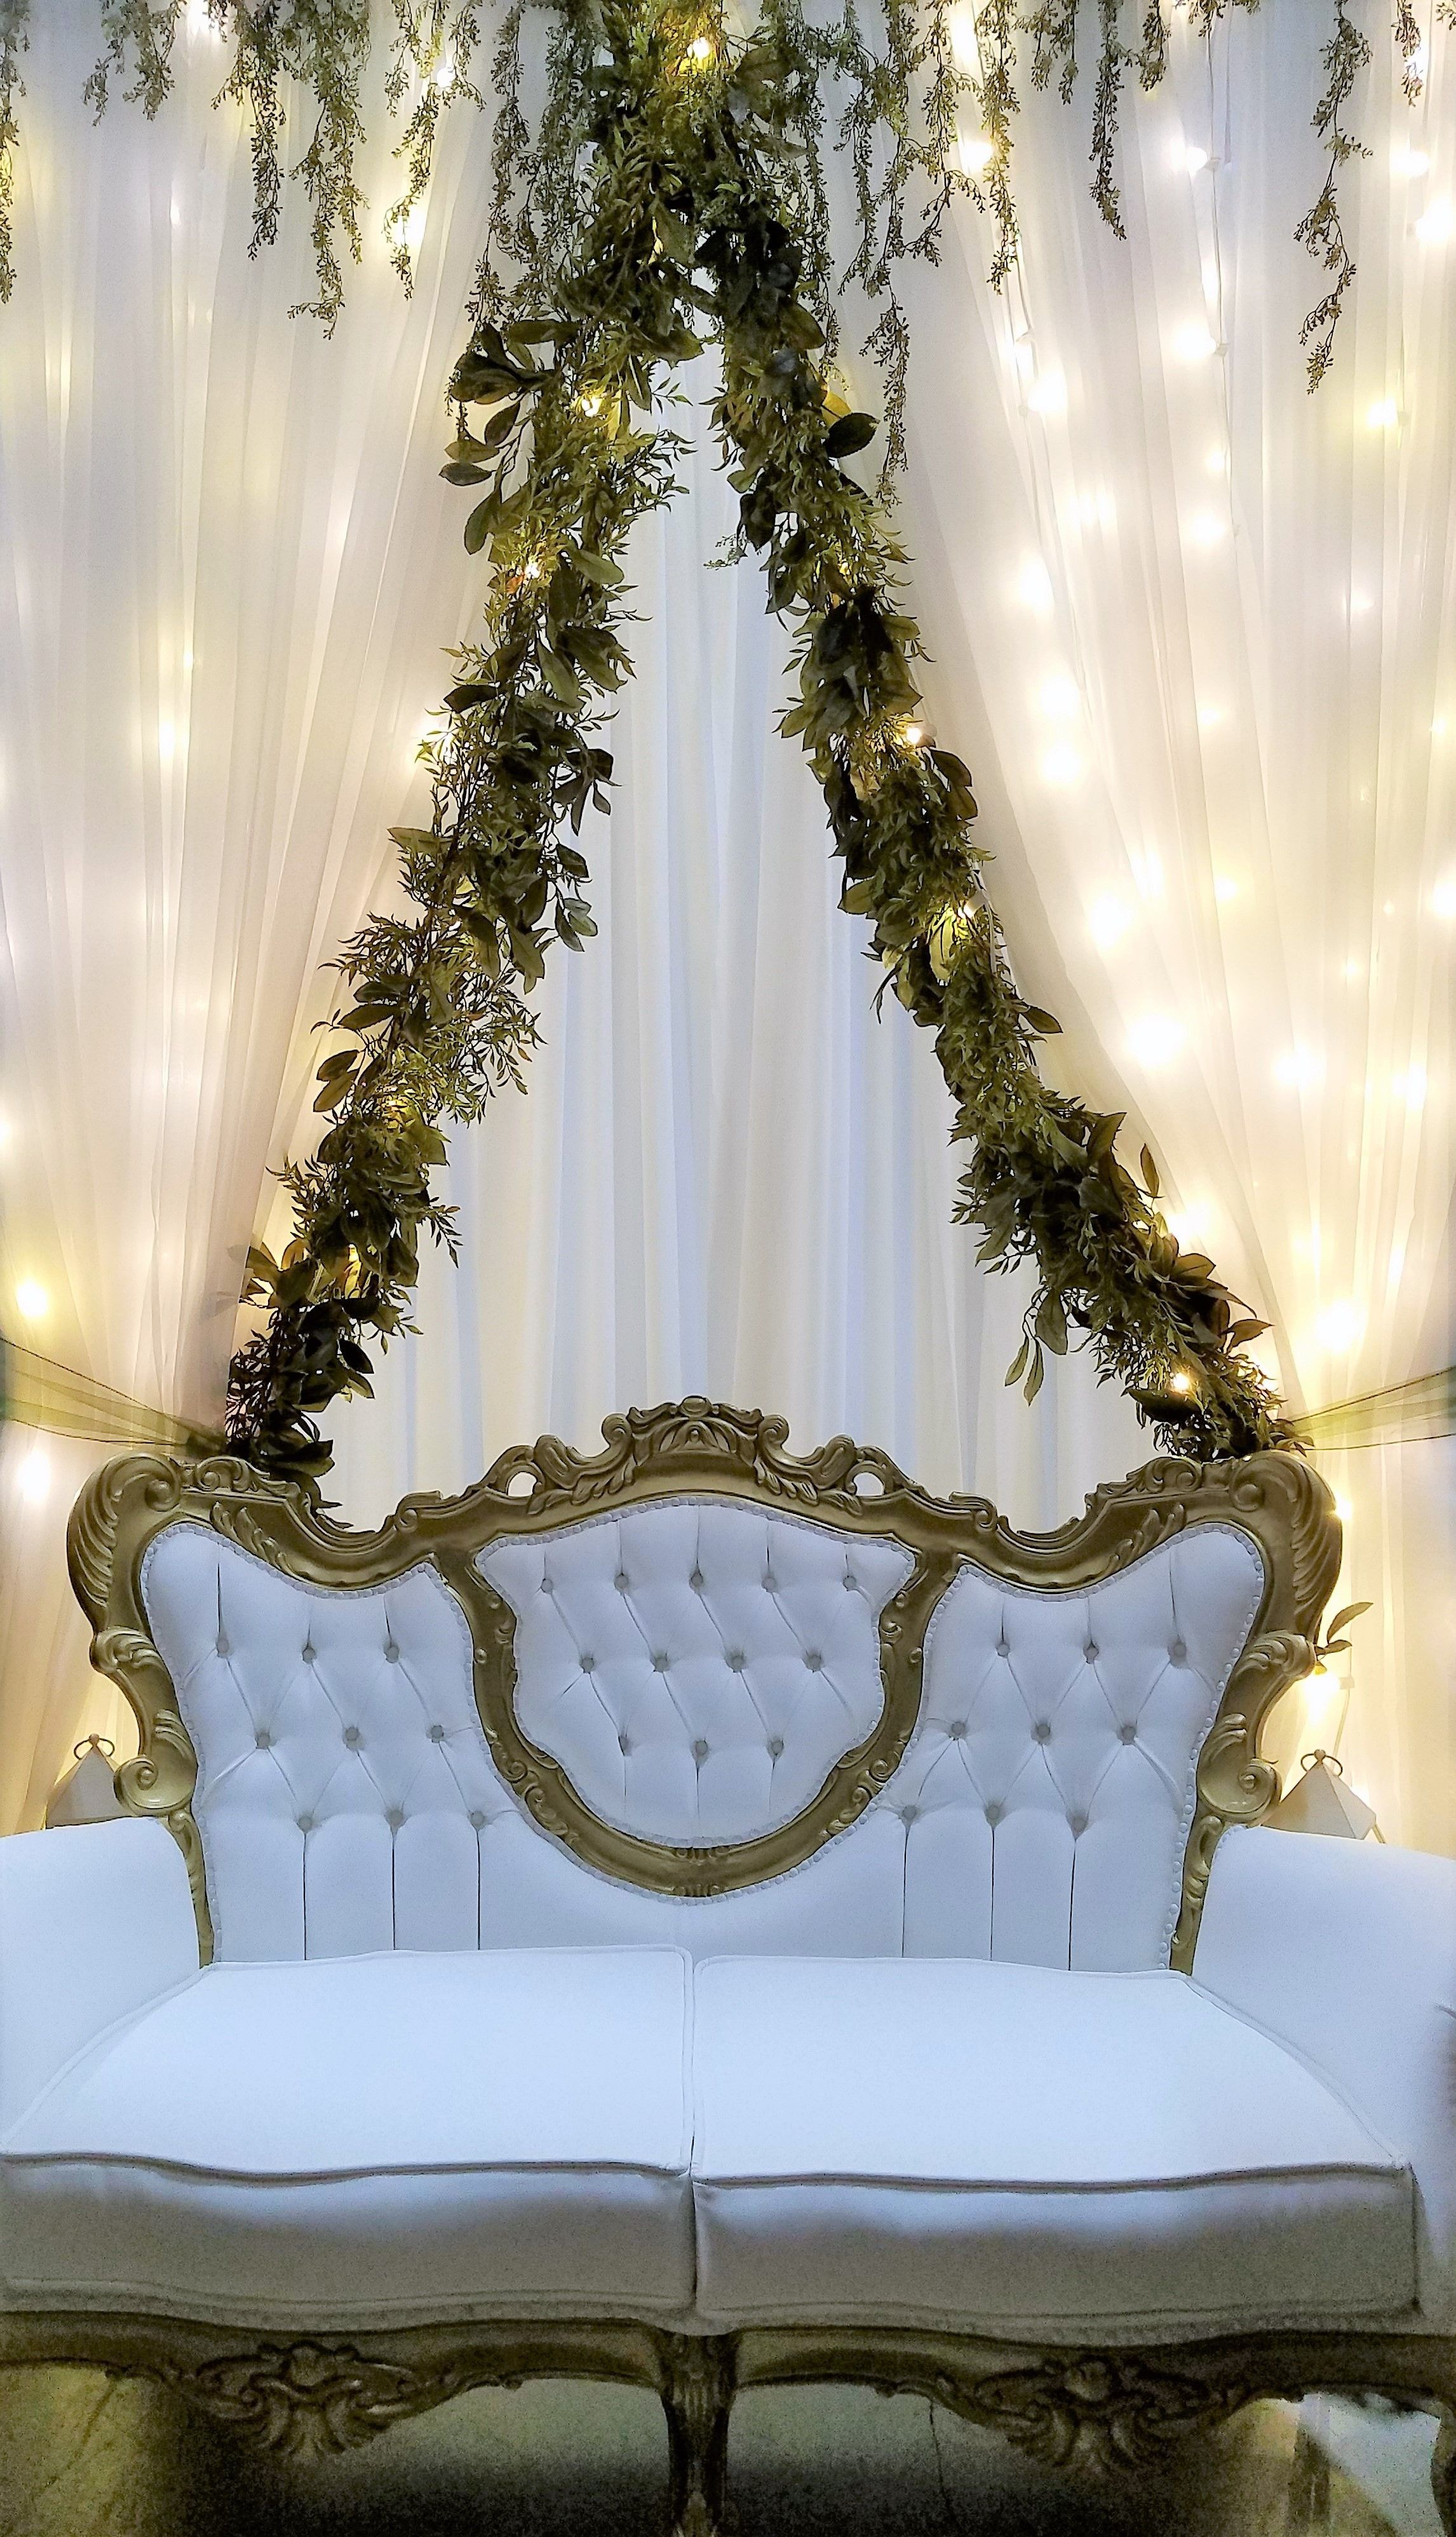 Groovy Victorian Couch In Front Of A Sheer Backdrop With Greenery Machost Co Dining Chair Design Ideas Machostcouk